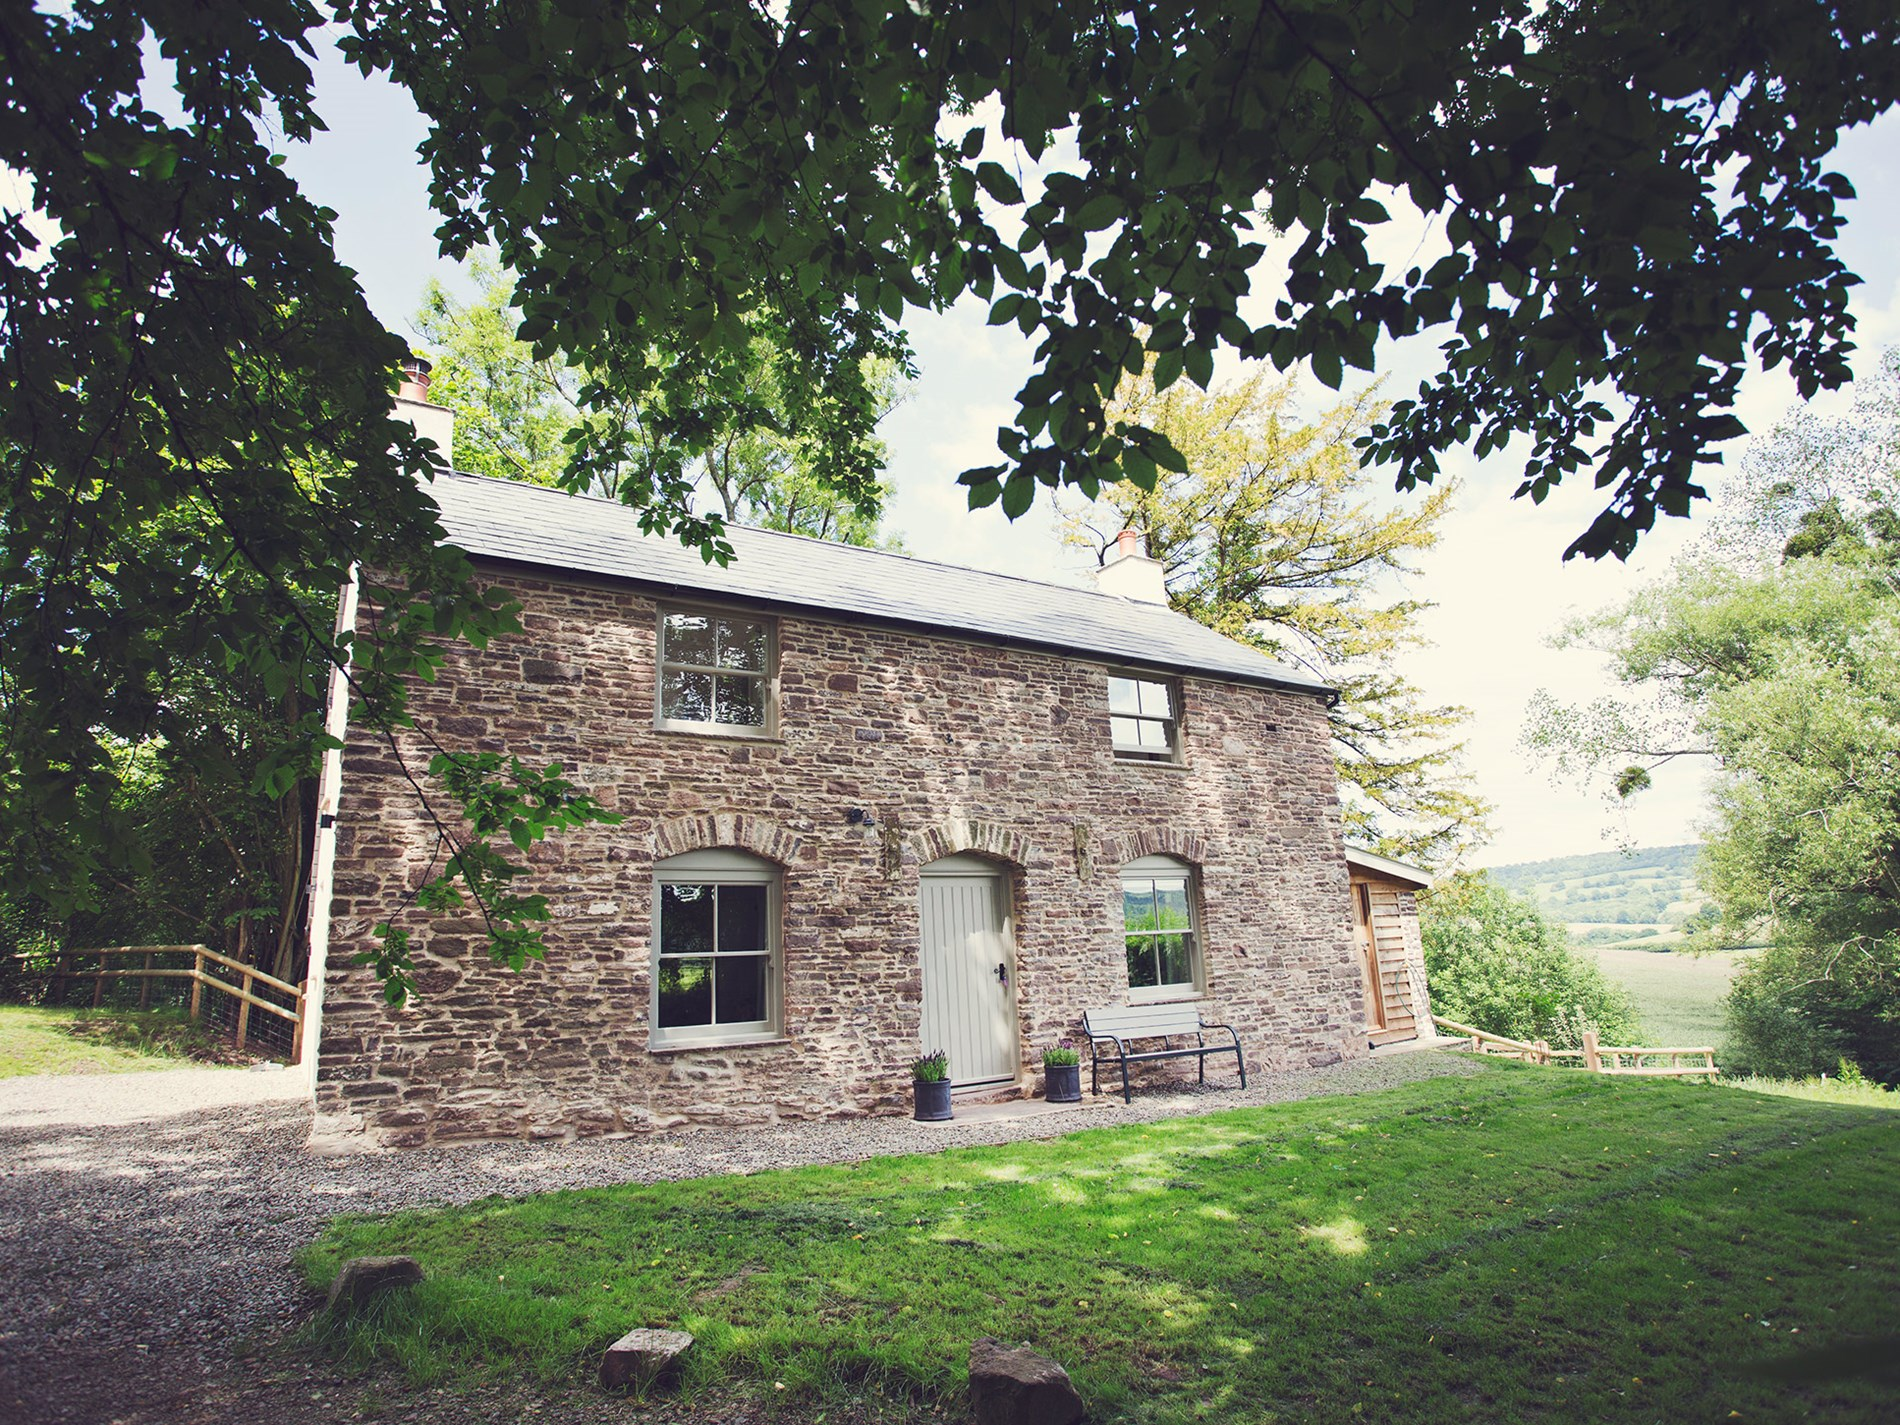 2 Bedroom Cottage in Chepstow, Pembrokeshire and the South